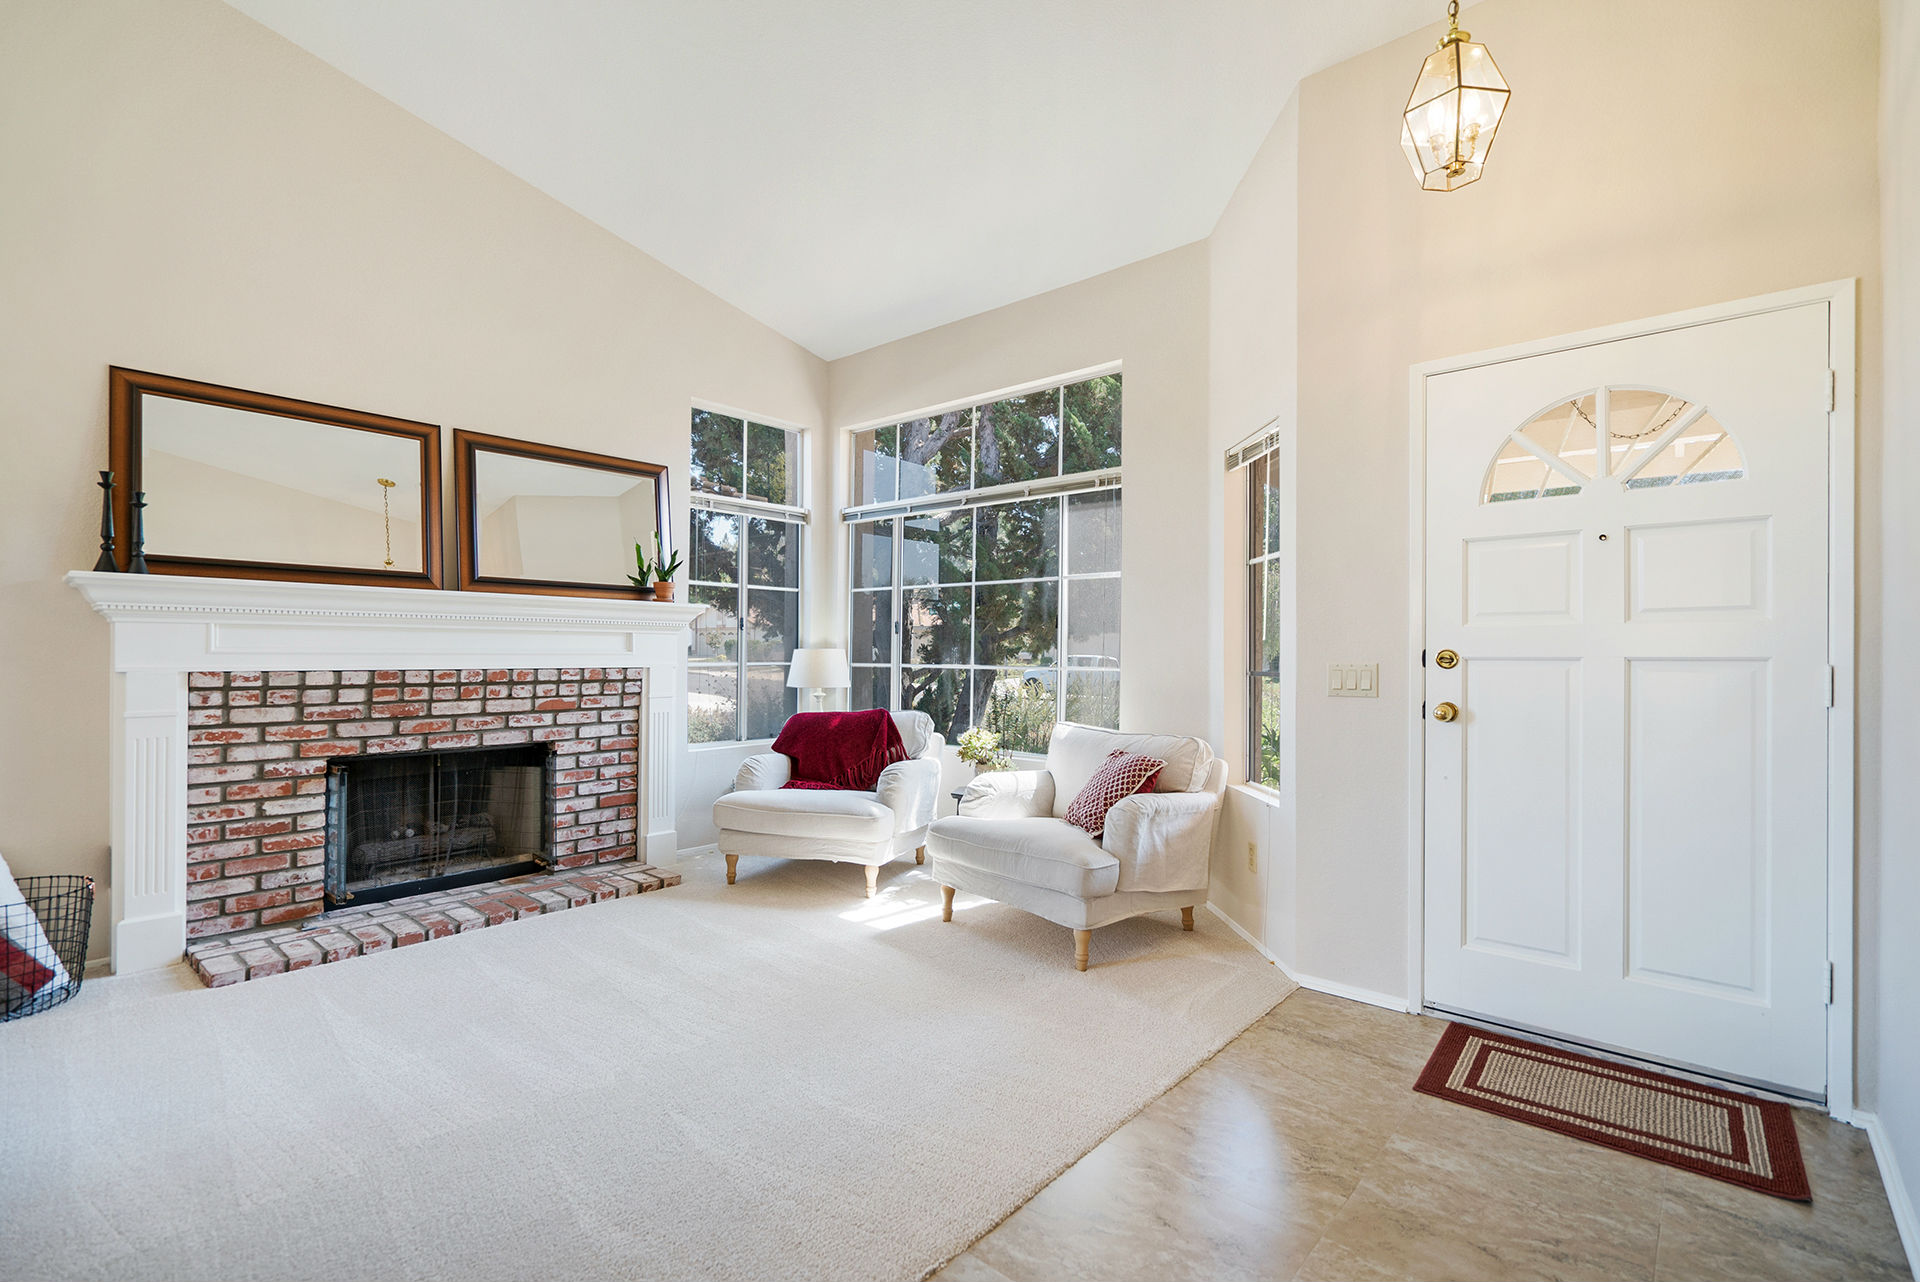 formal living room with brick fireplace paint my ideas tara april glatzel the sister team info for wood streets tile entry welcomes you to a vaulted ceiling and in new flooring